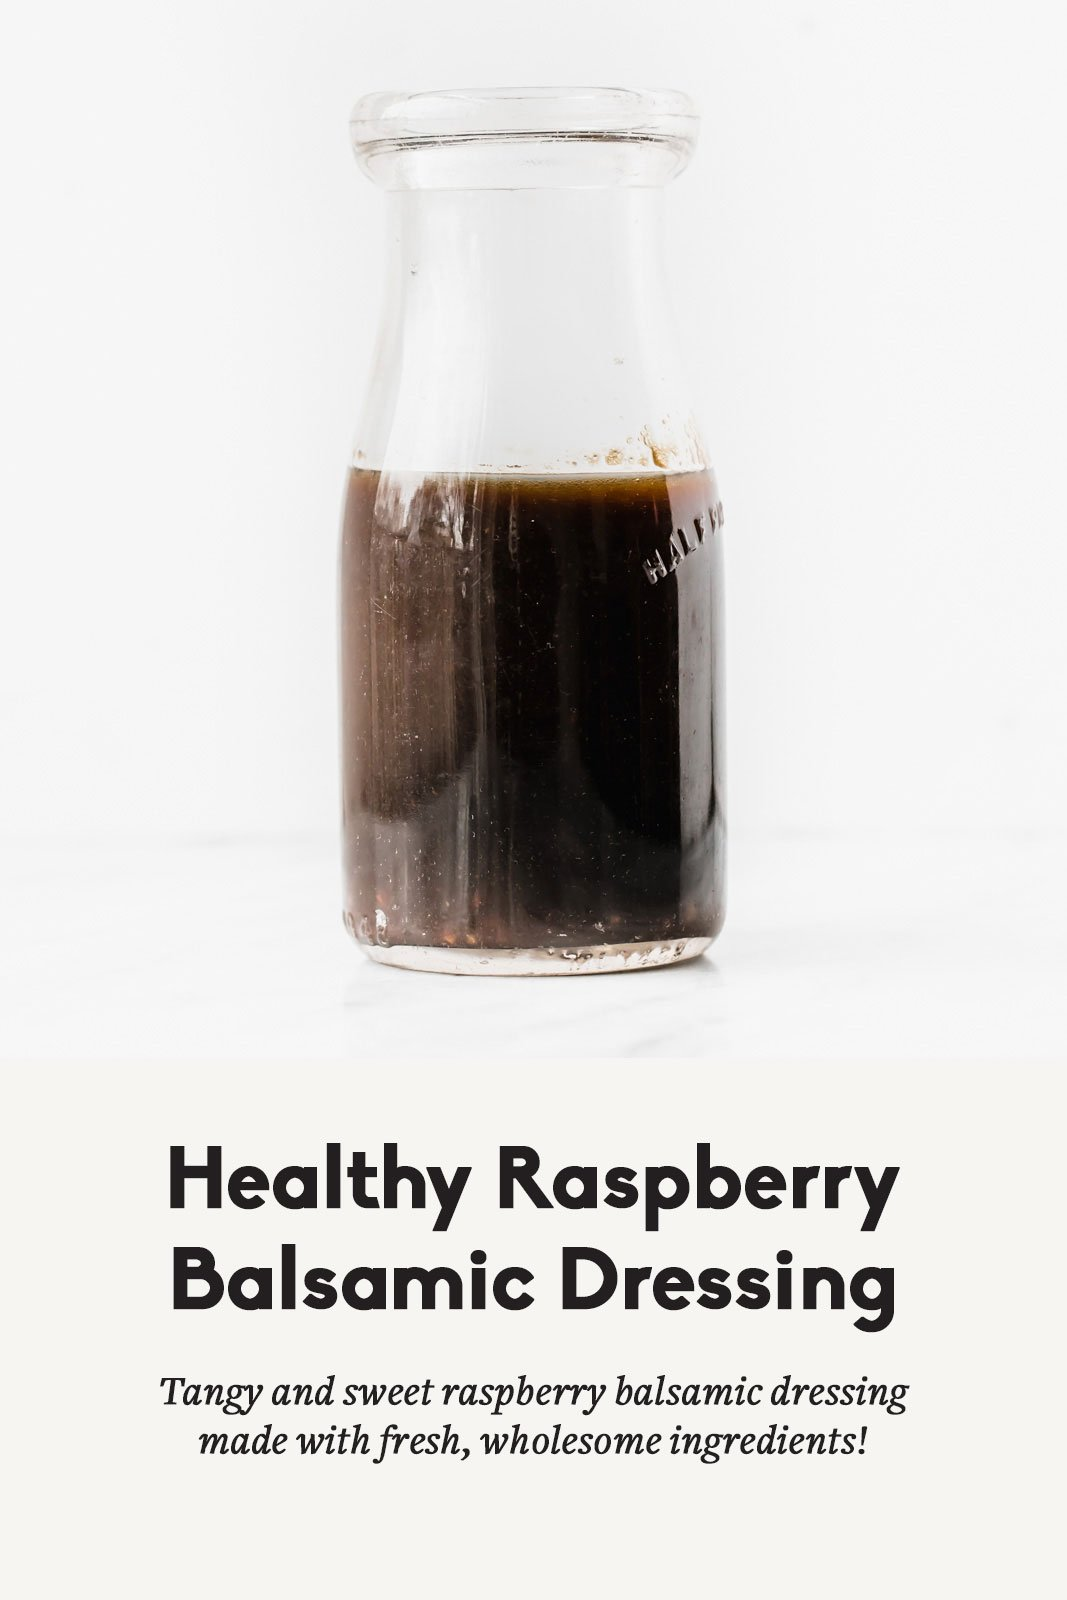 Healthy raspberry balsamic dressing in a clear glass